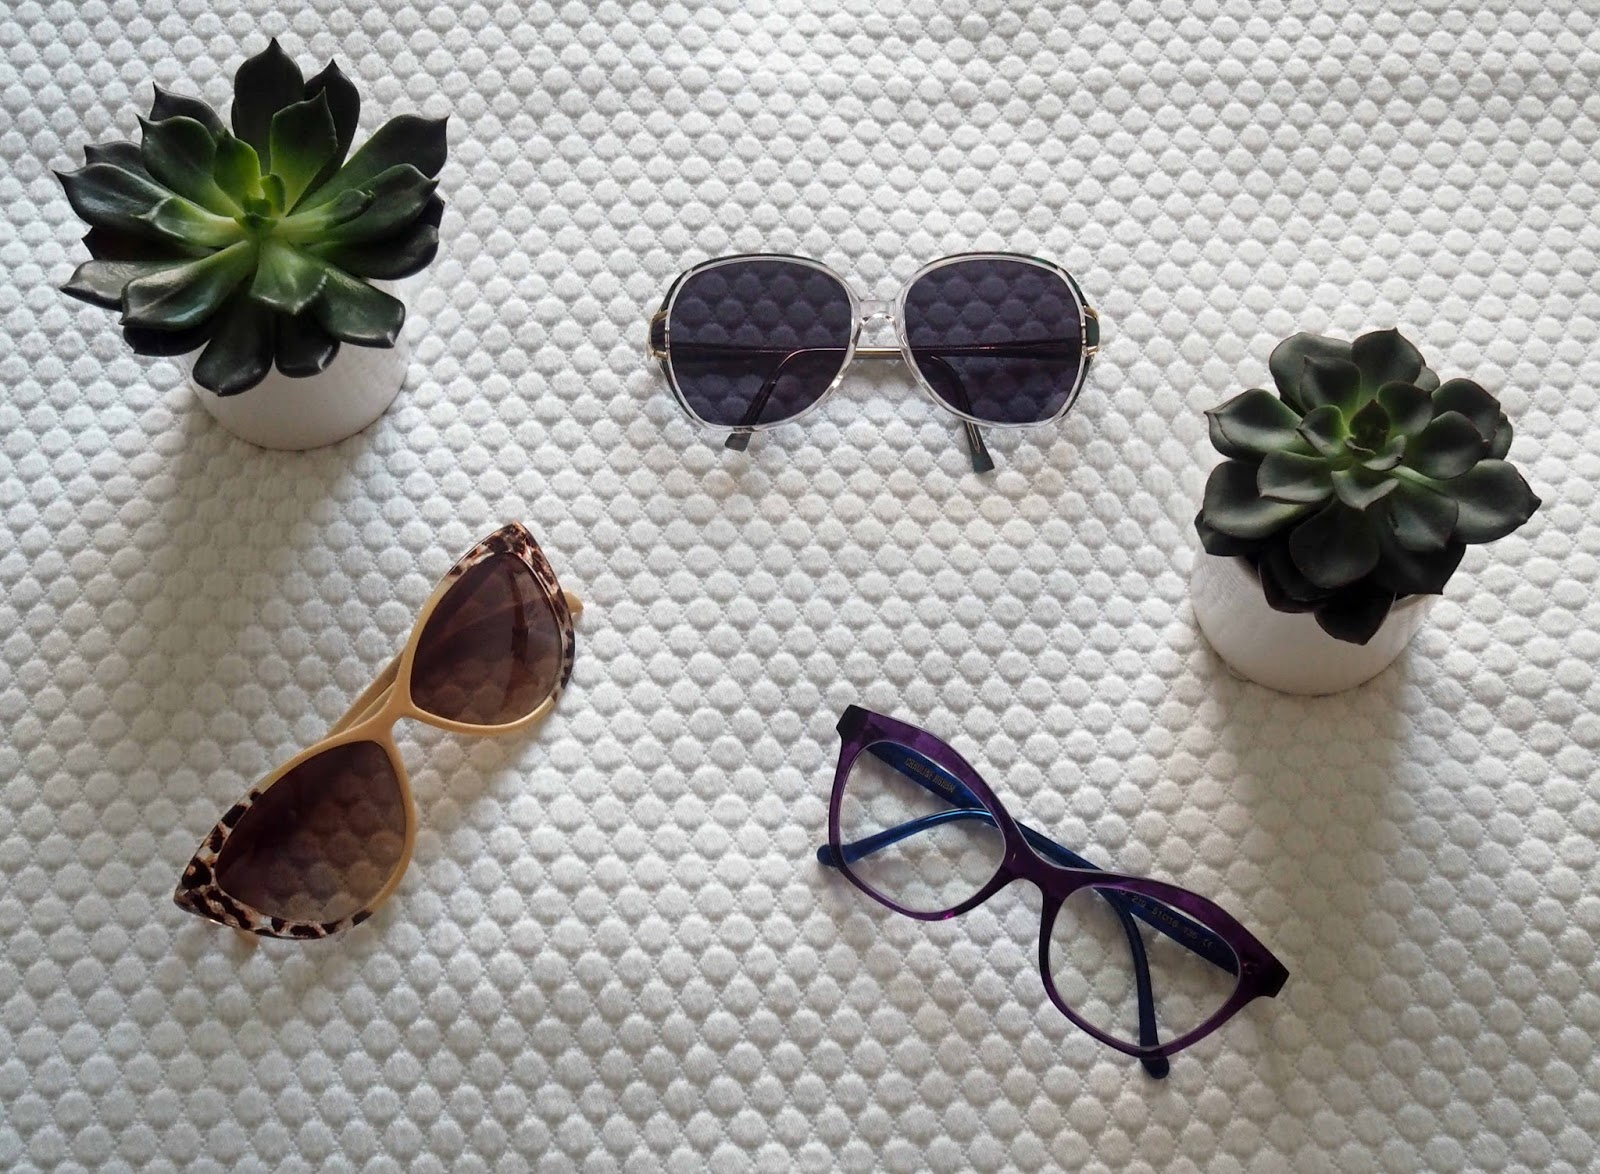 Holiday-packing-travel-Nerja-sunglasses